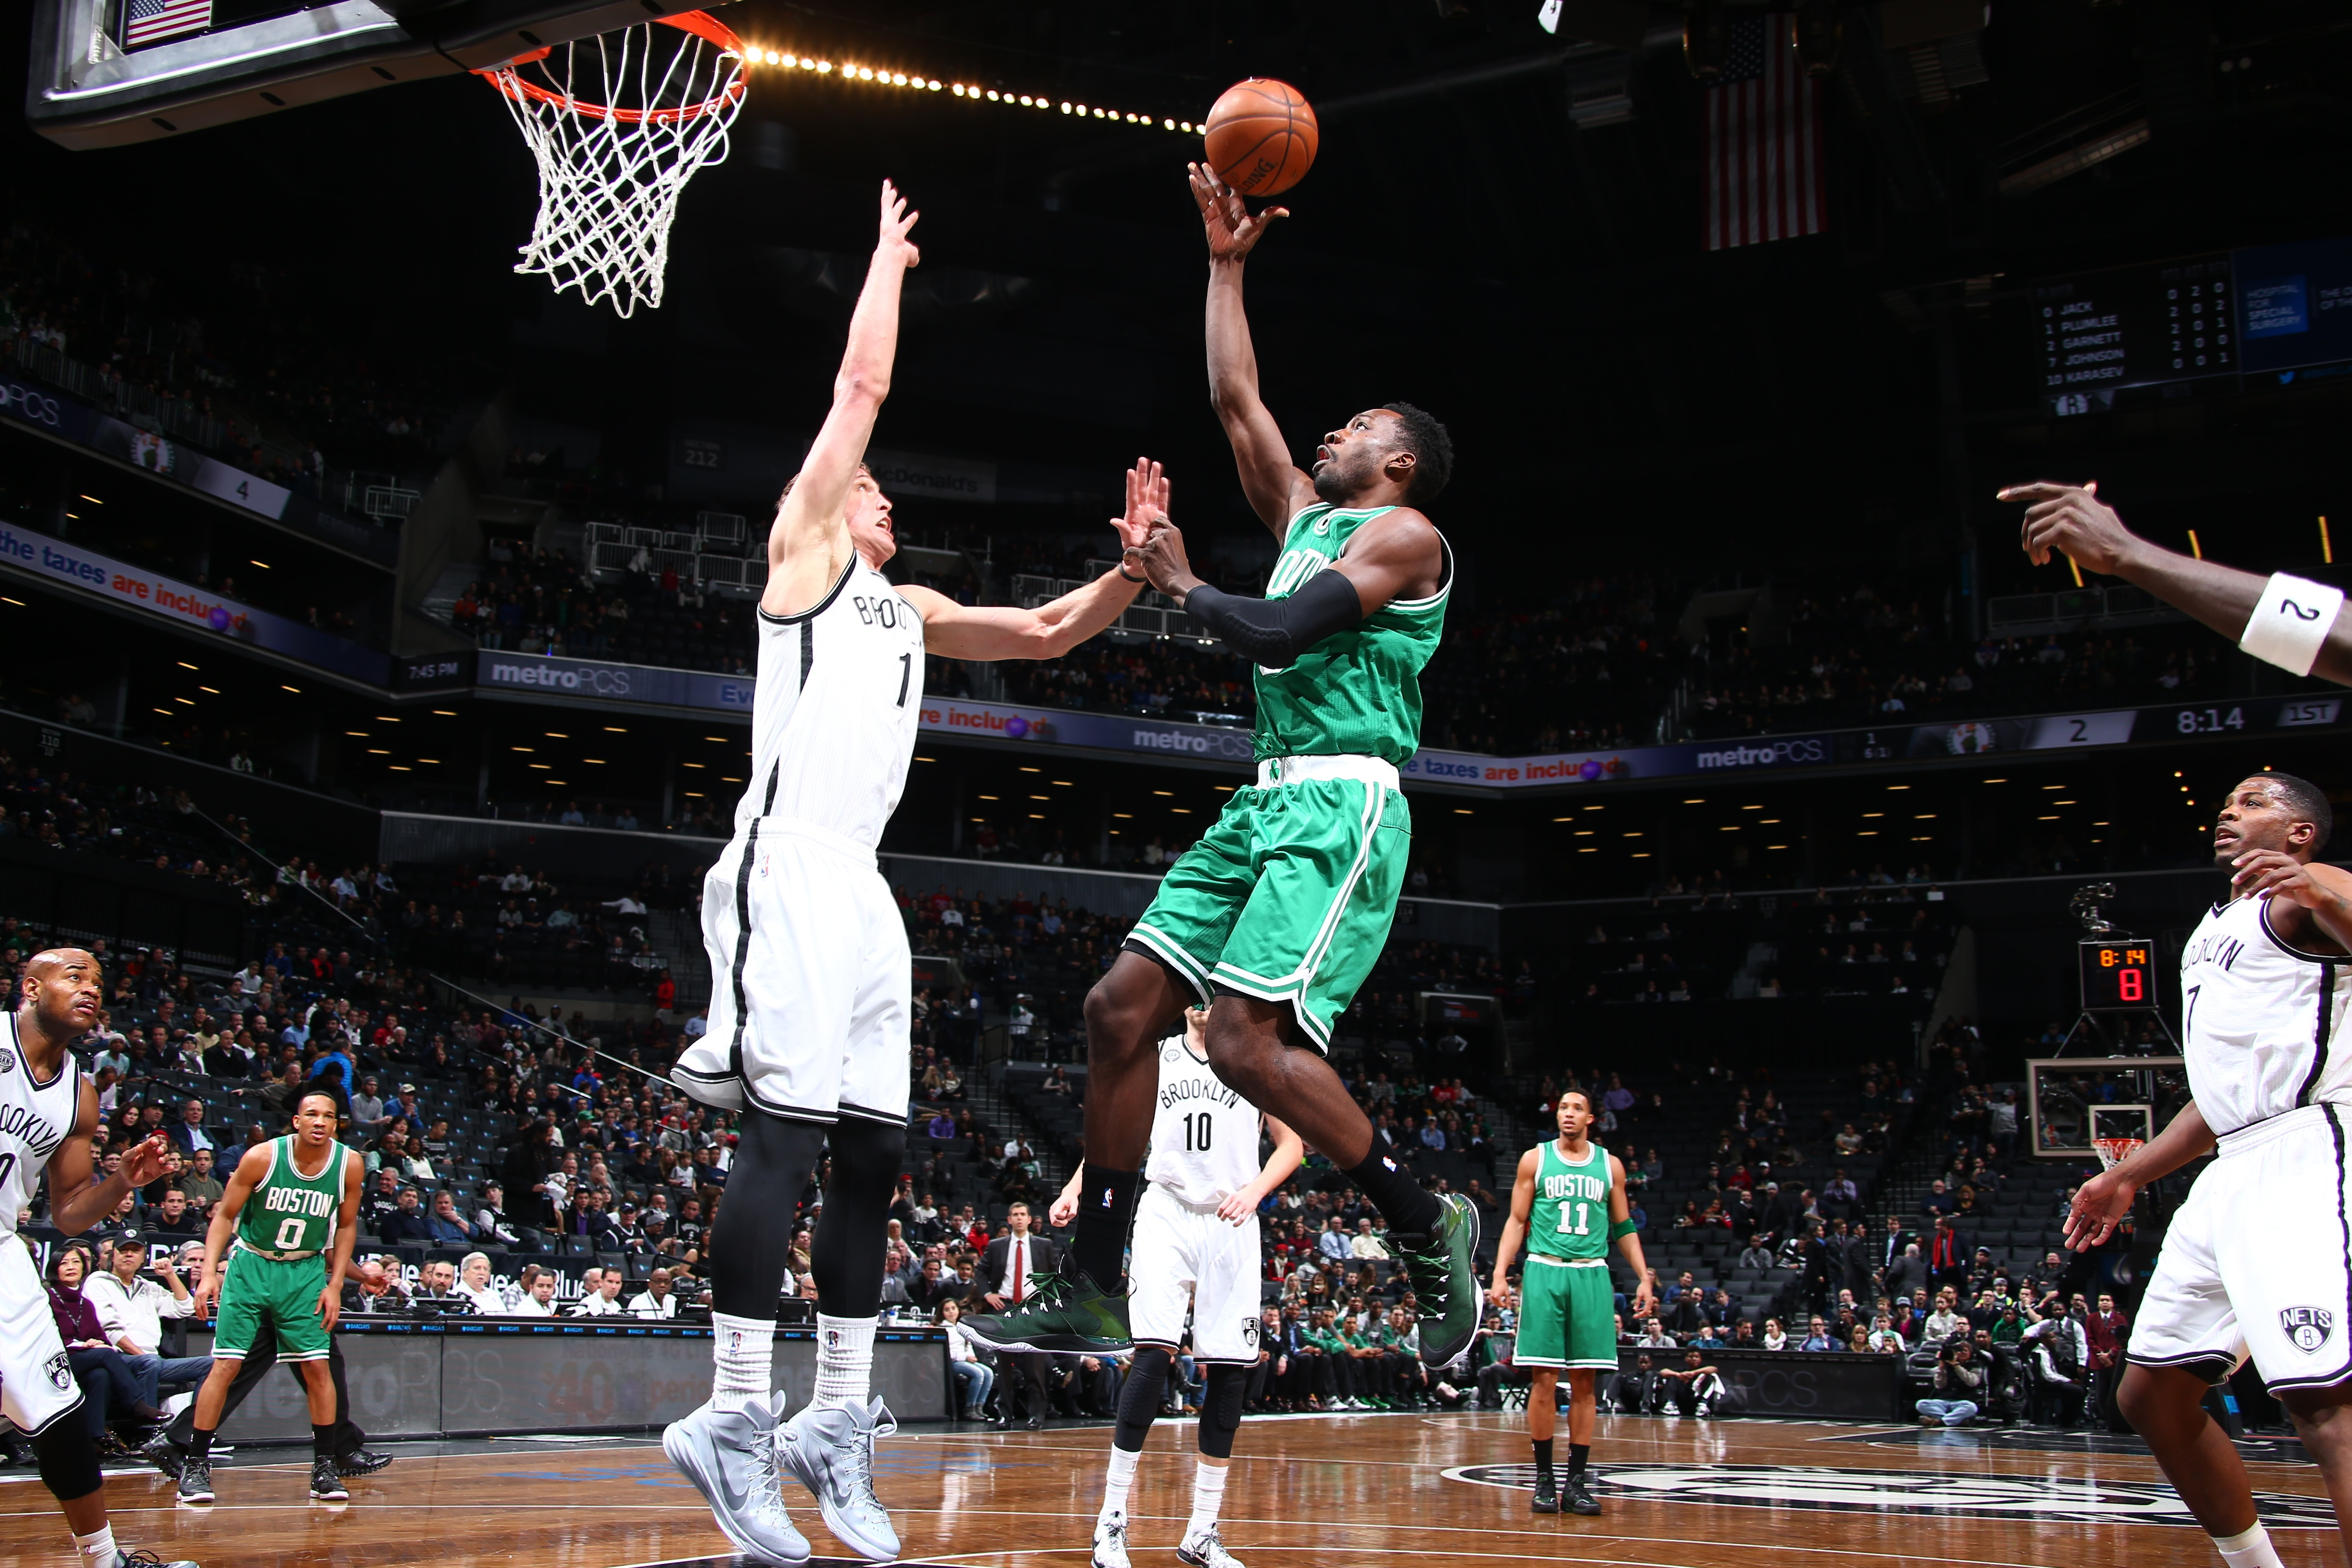 photos: celtics vs. nets - jan. 7, 2015 | boston celtics